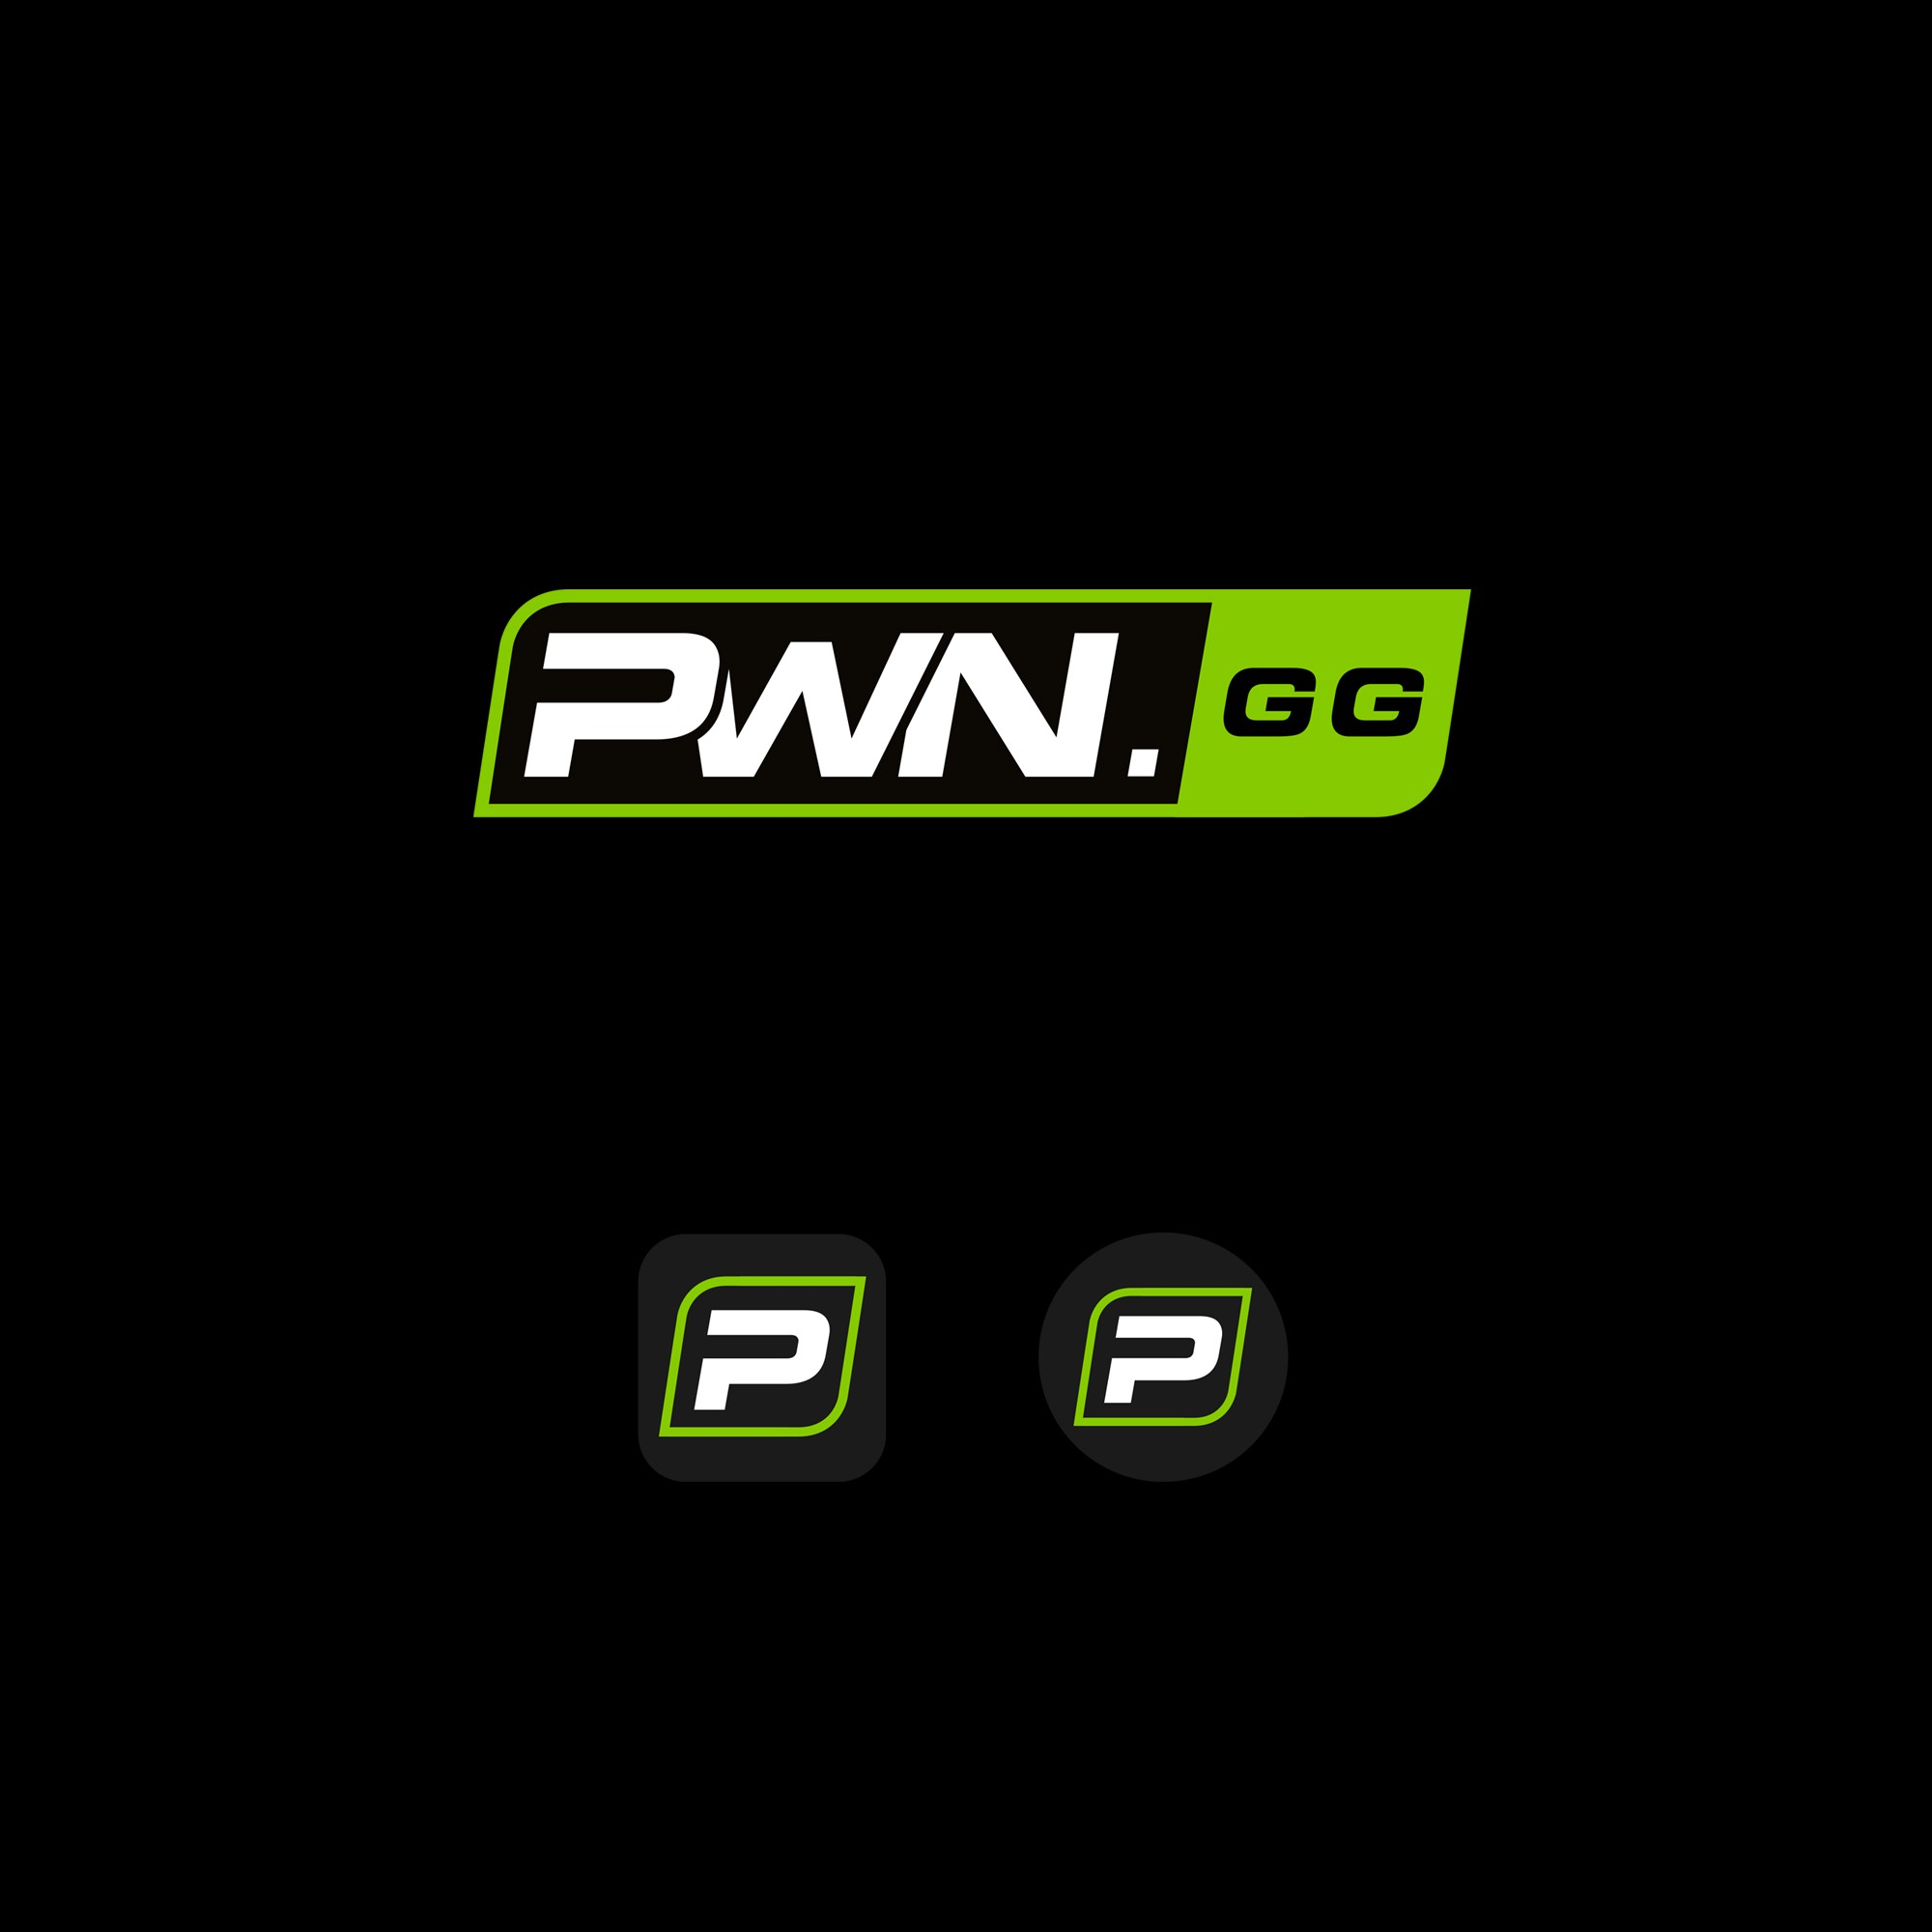 Rebrand our Competitive Esports News Site as pwn.gg